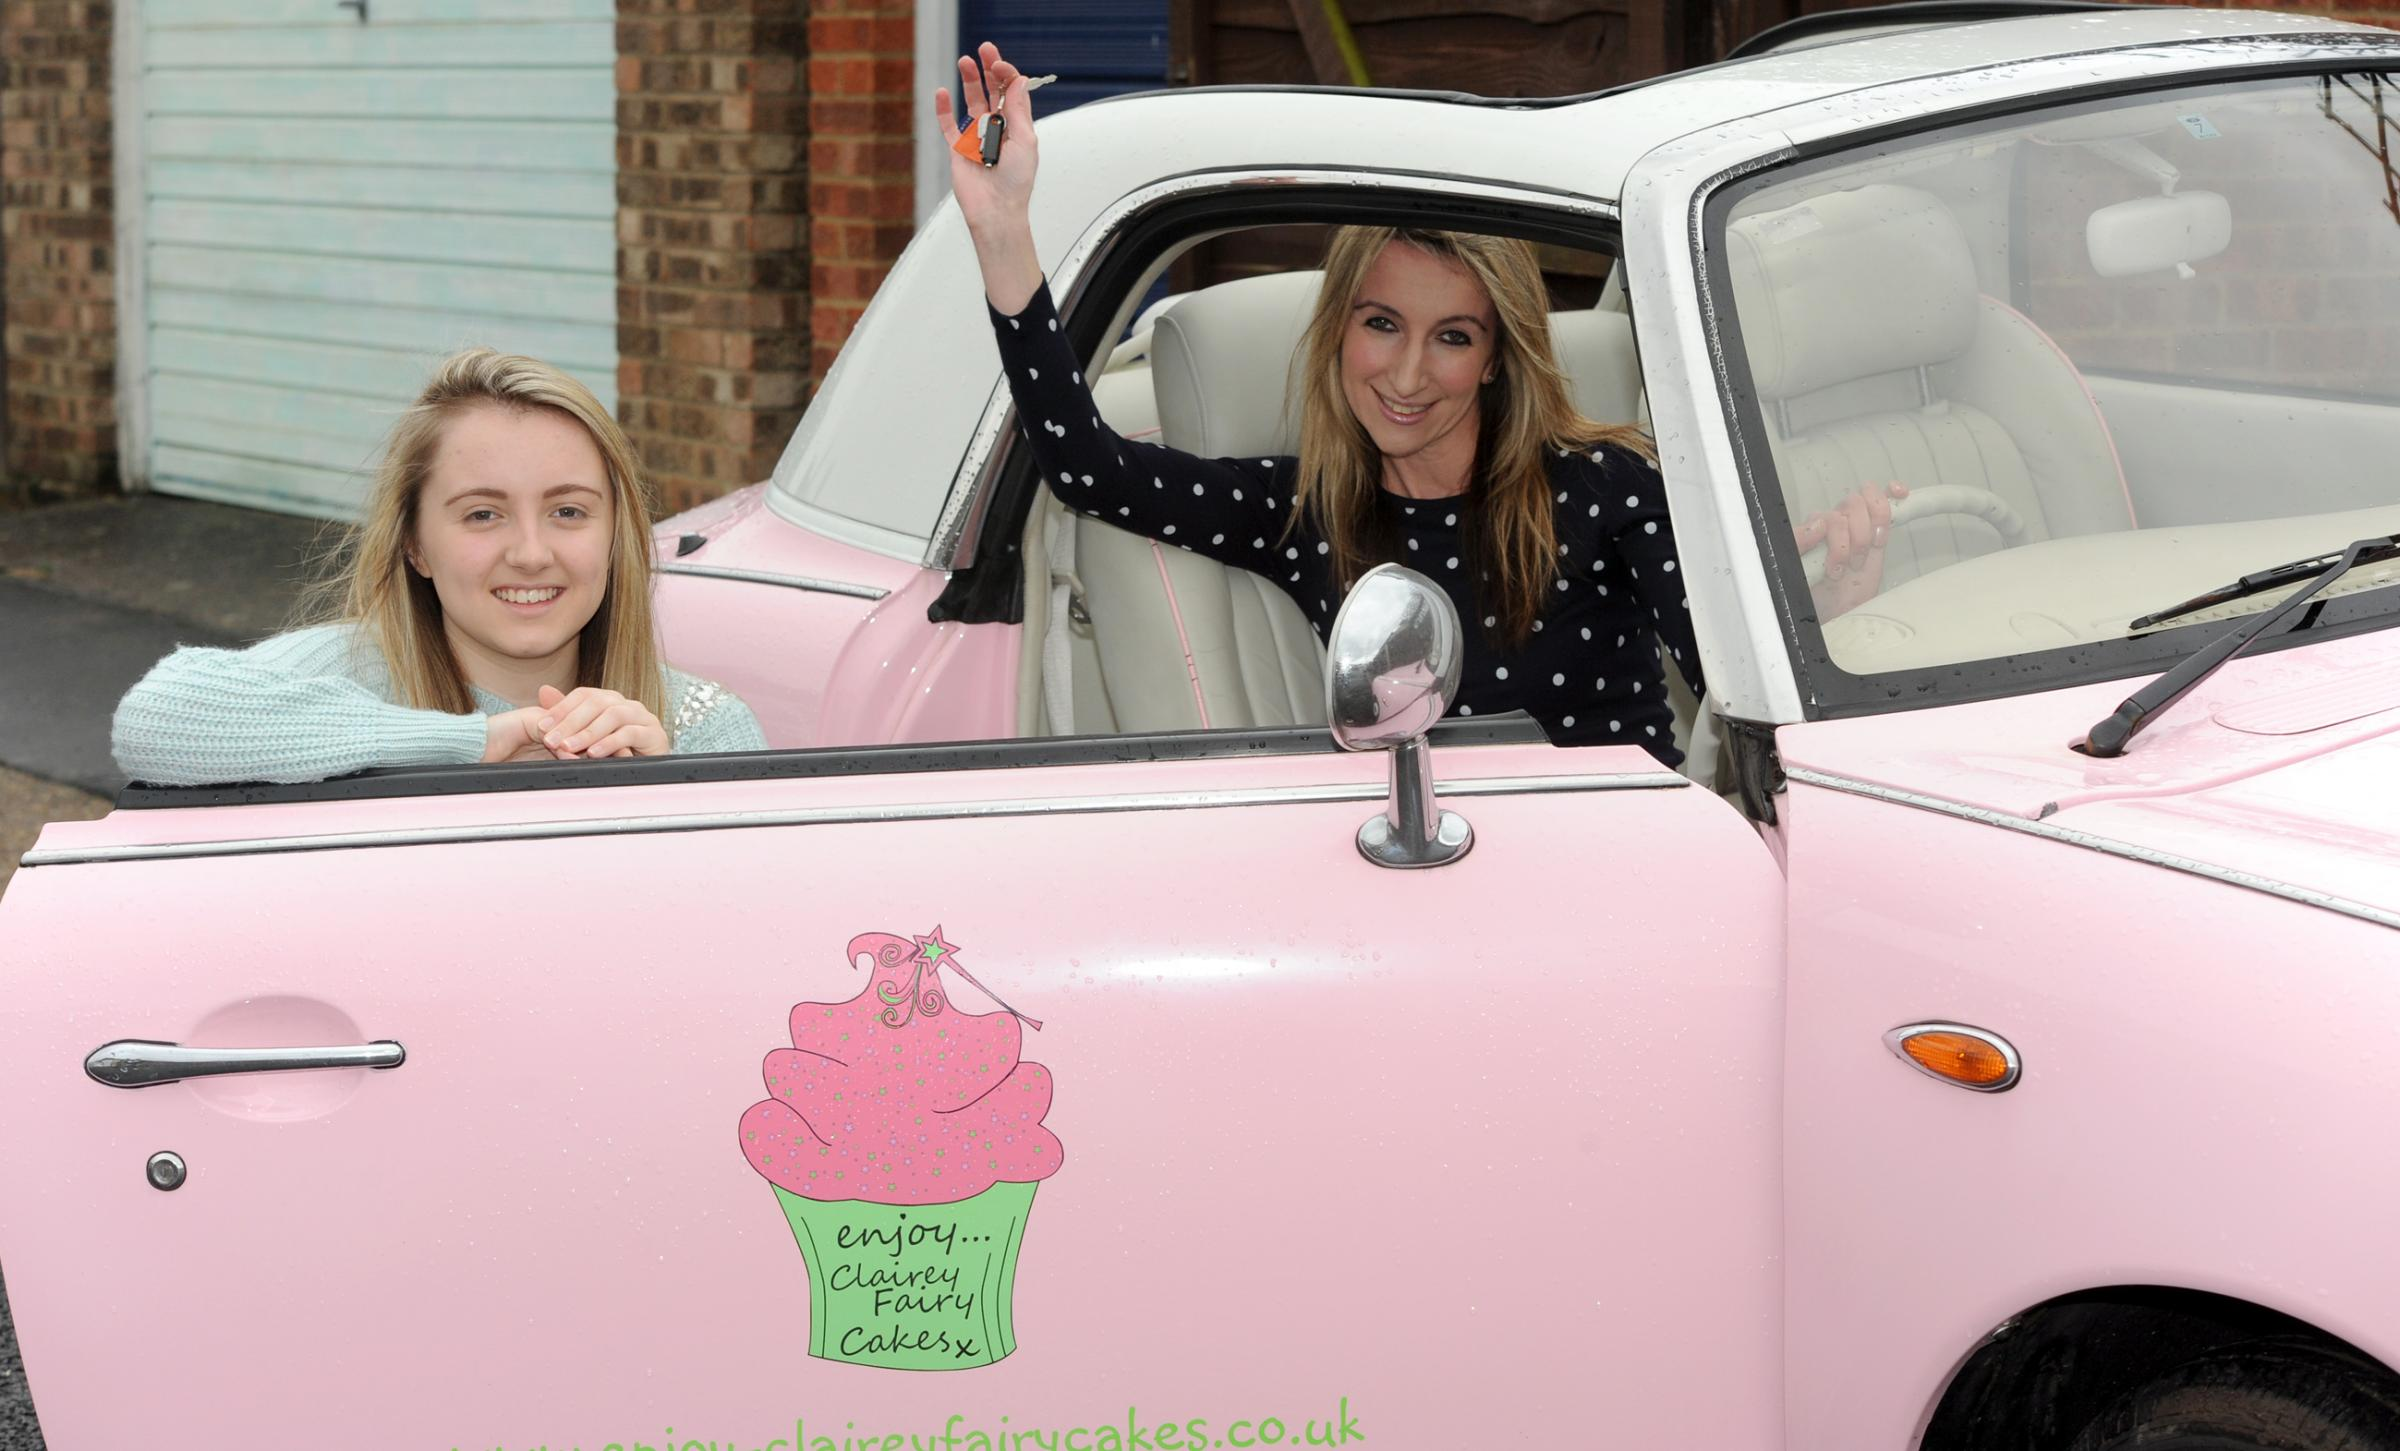 Tracey Atkins with her daughter Amy and the car she won. Pic: Luan Marshall